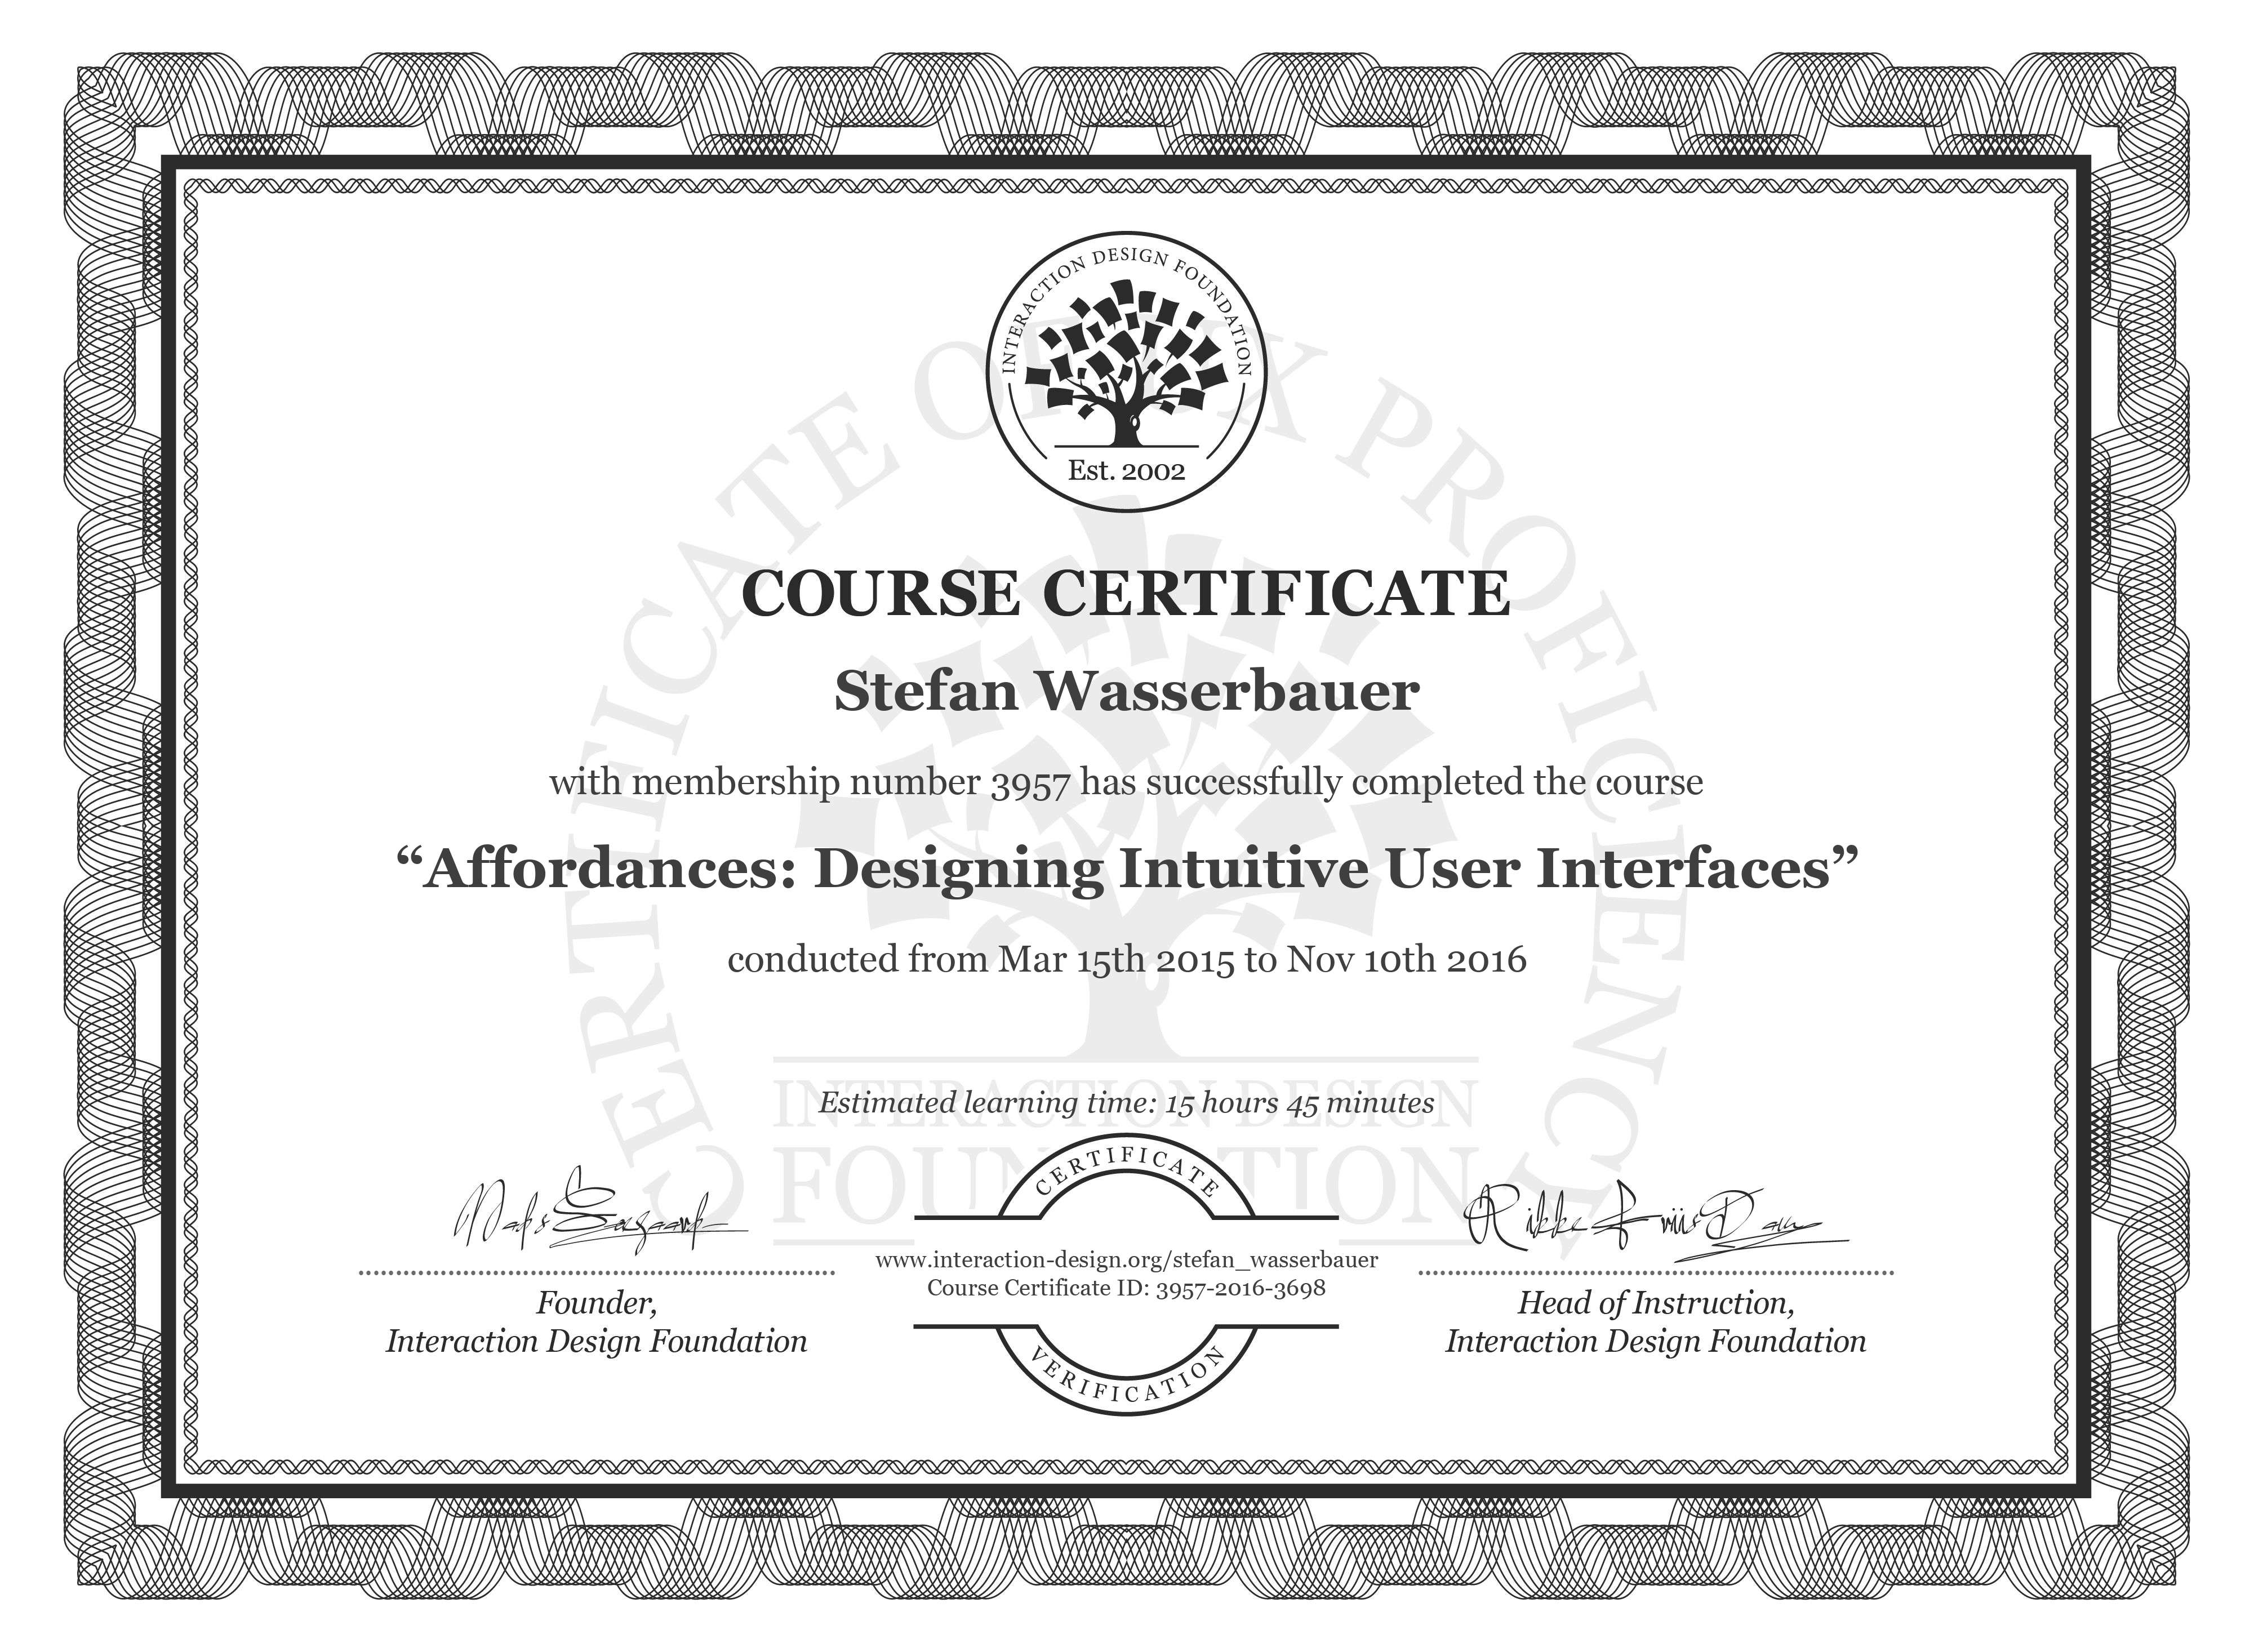 Stefan Wasserbauer's Course Certificate: Affordances: Designing Intuitive User Interfaces